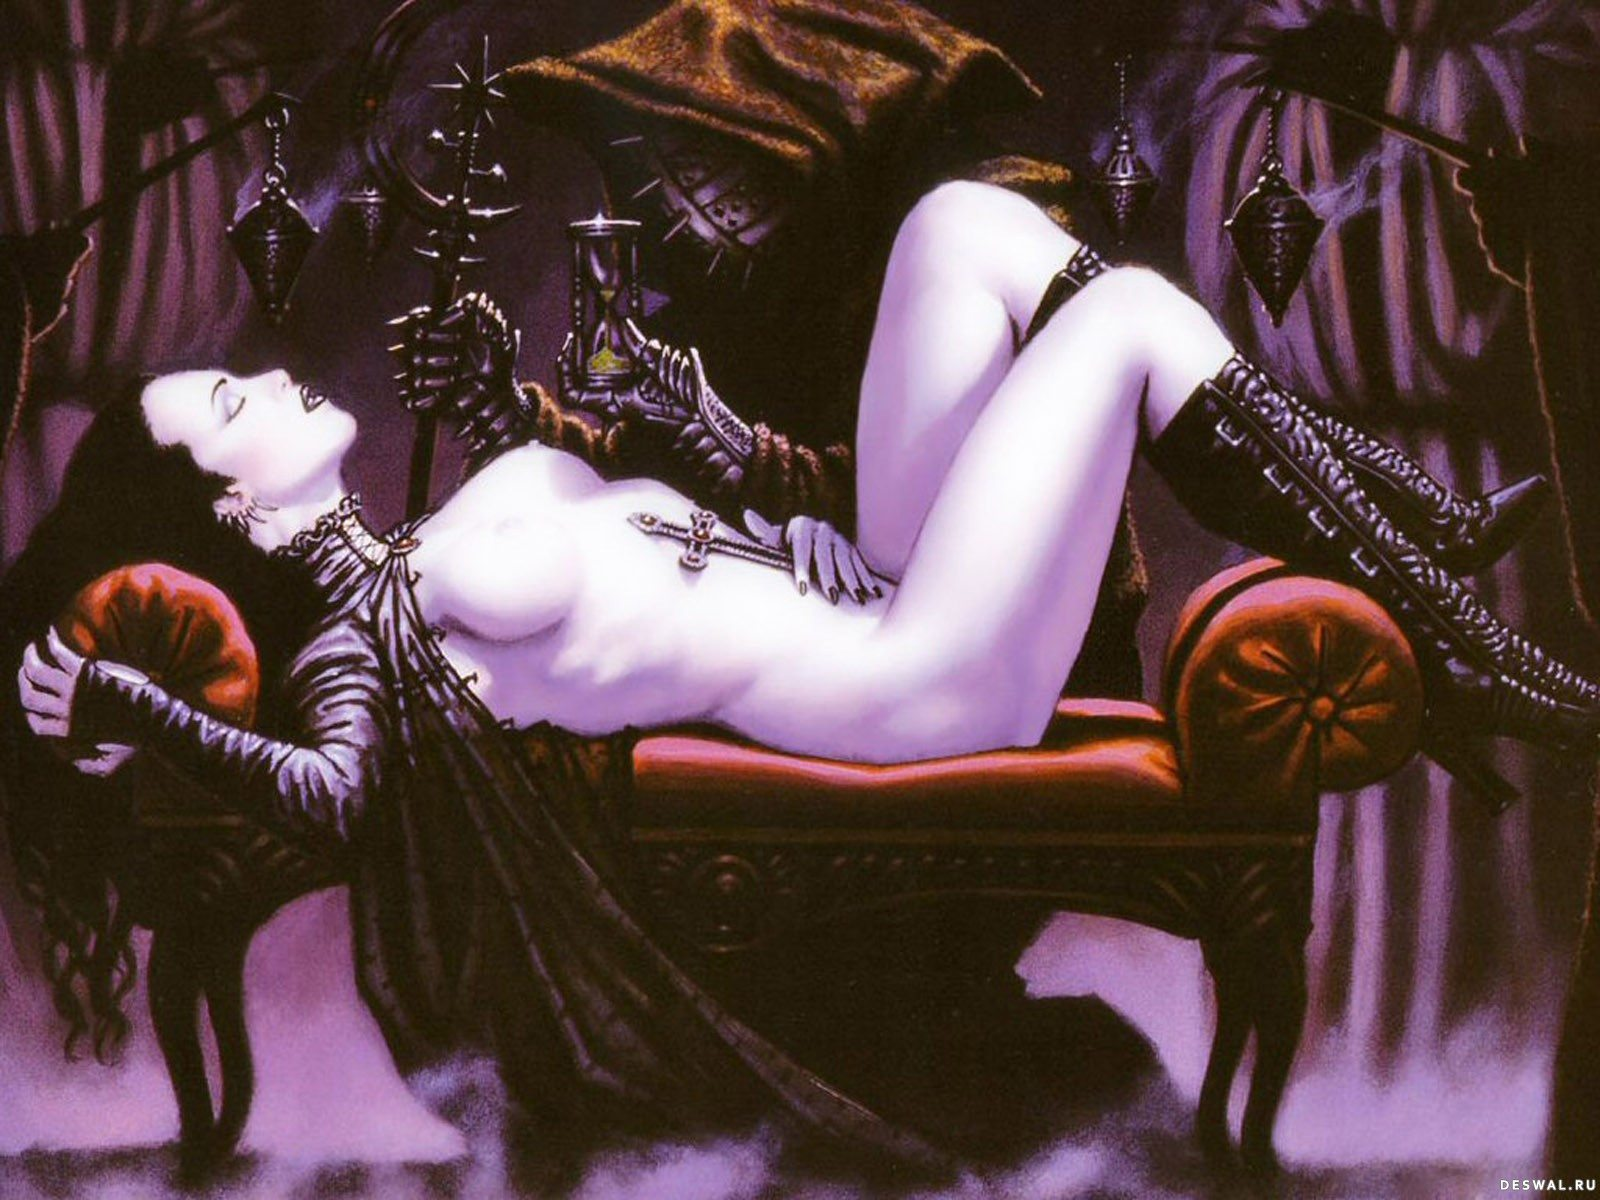 Dark fantasy Pictures, Images and Photos.